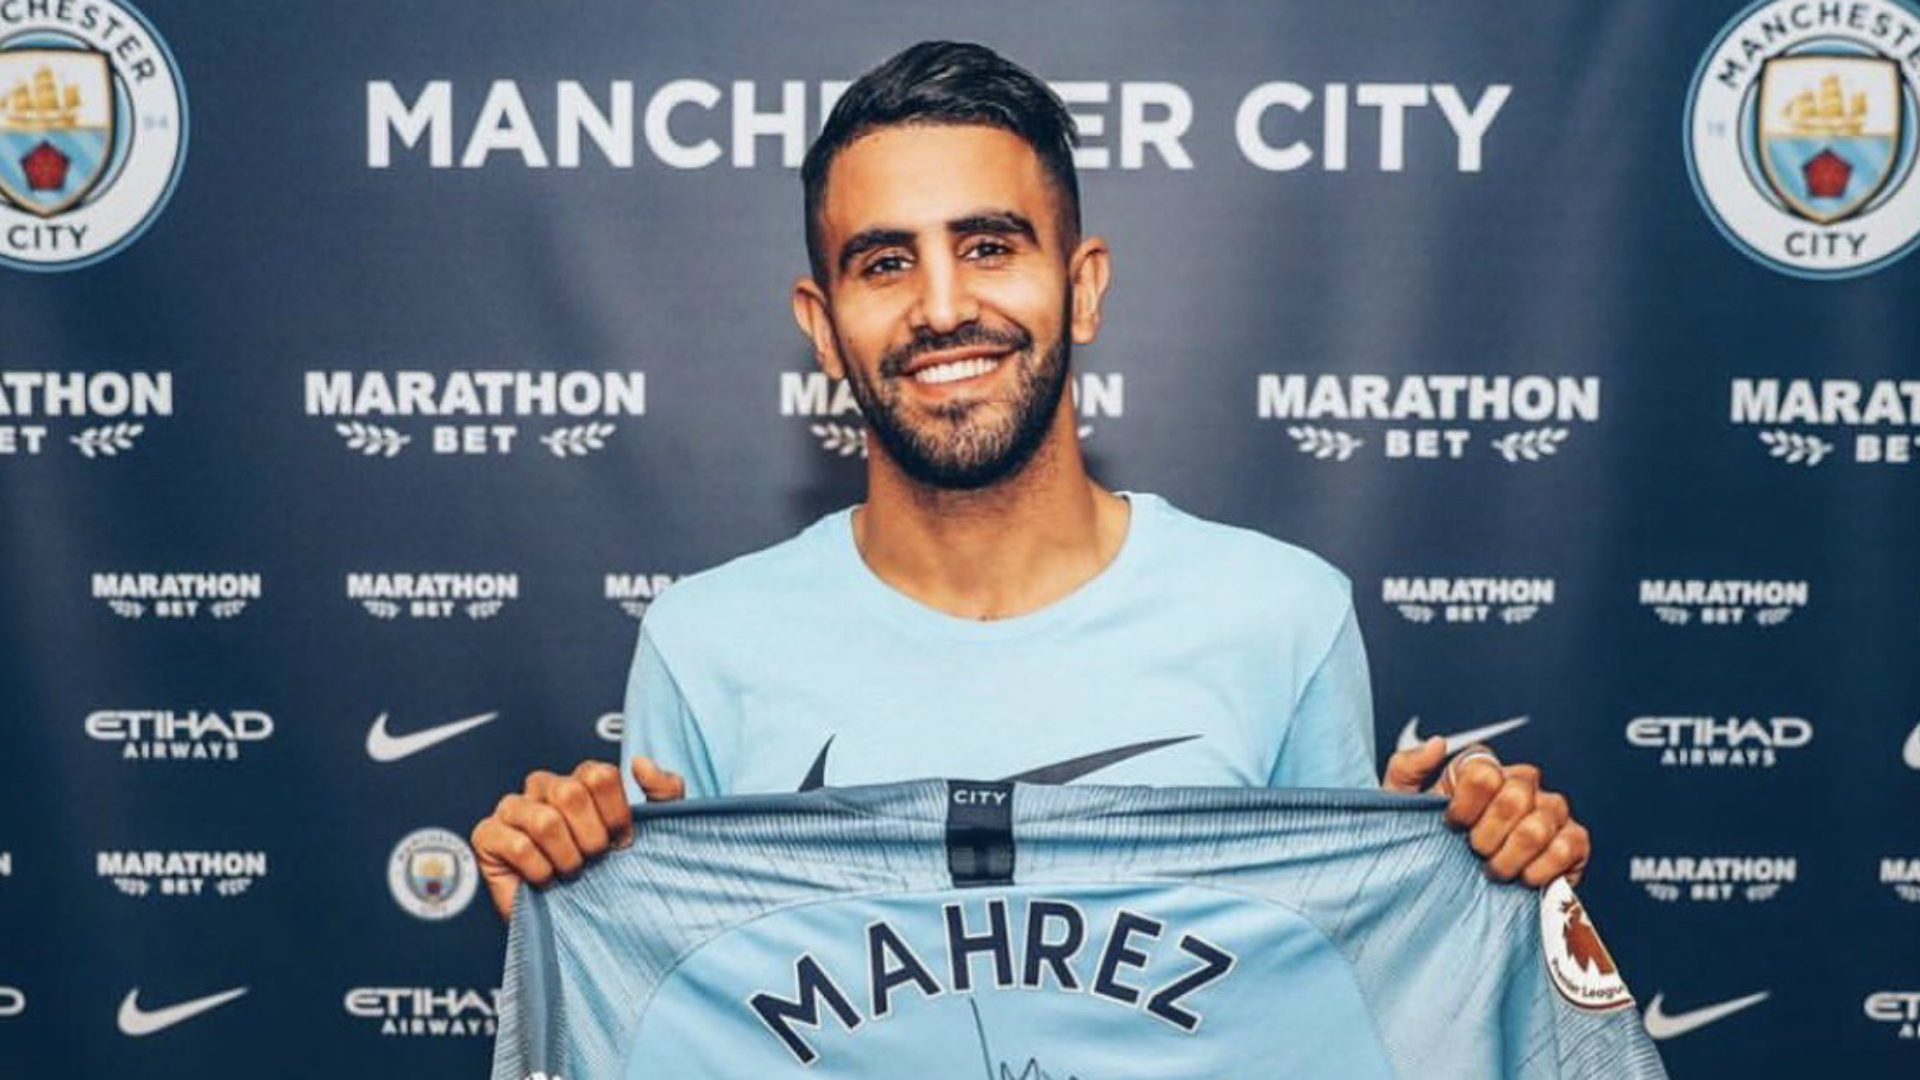 Riyad Mahrez aiming to win Champions League with Manchester City